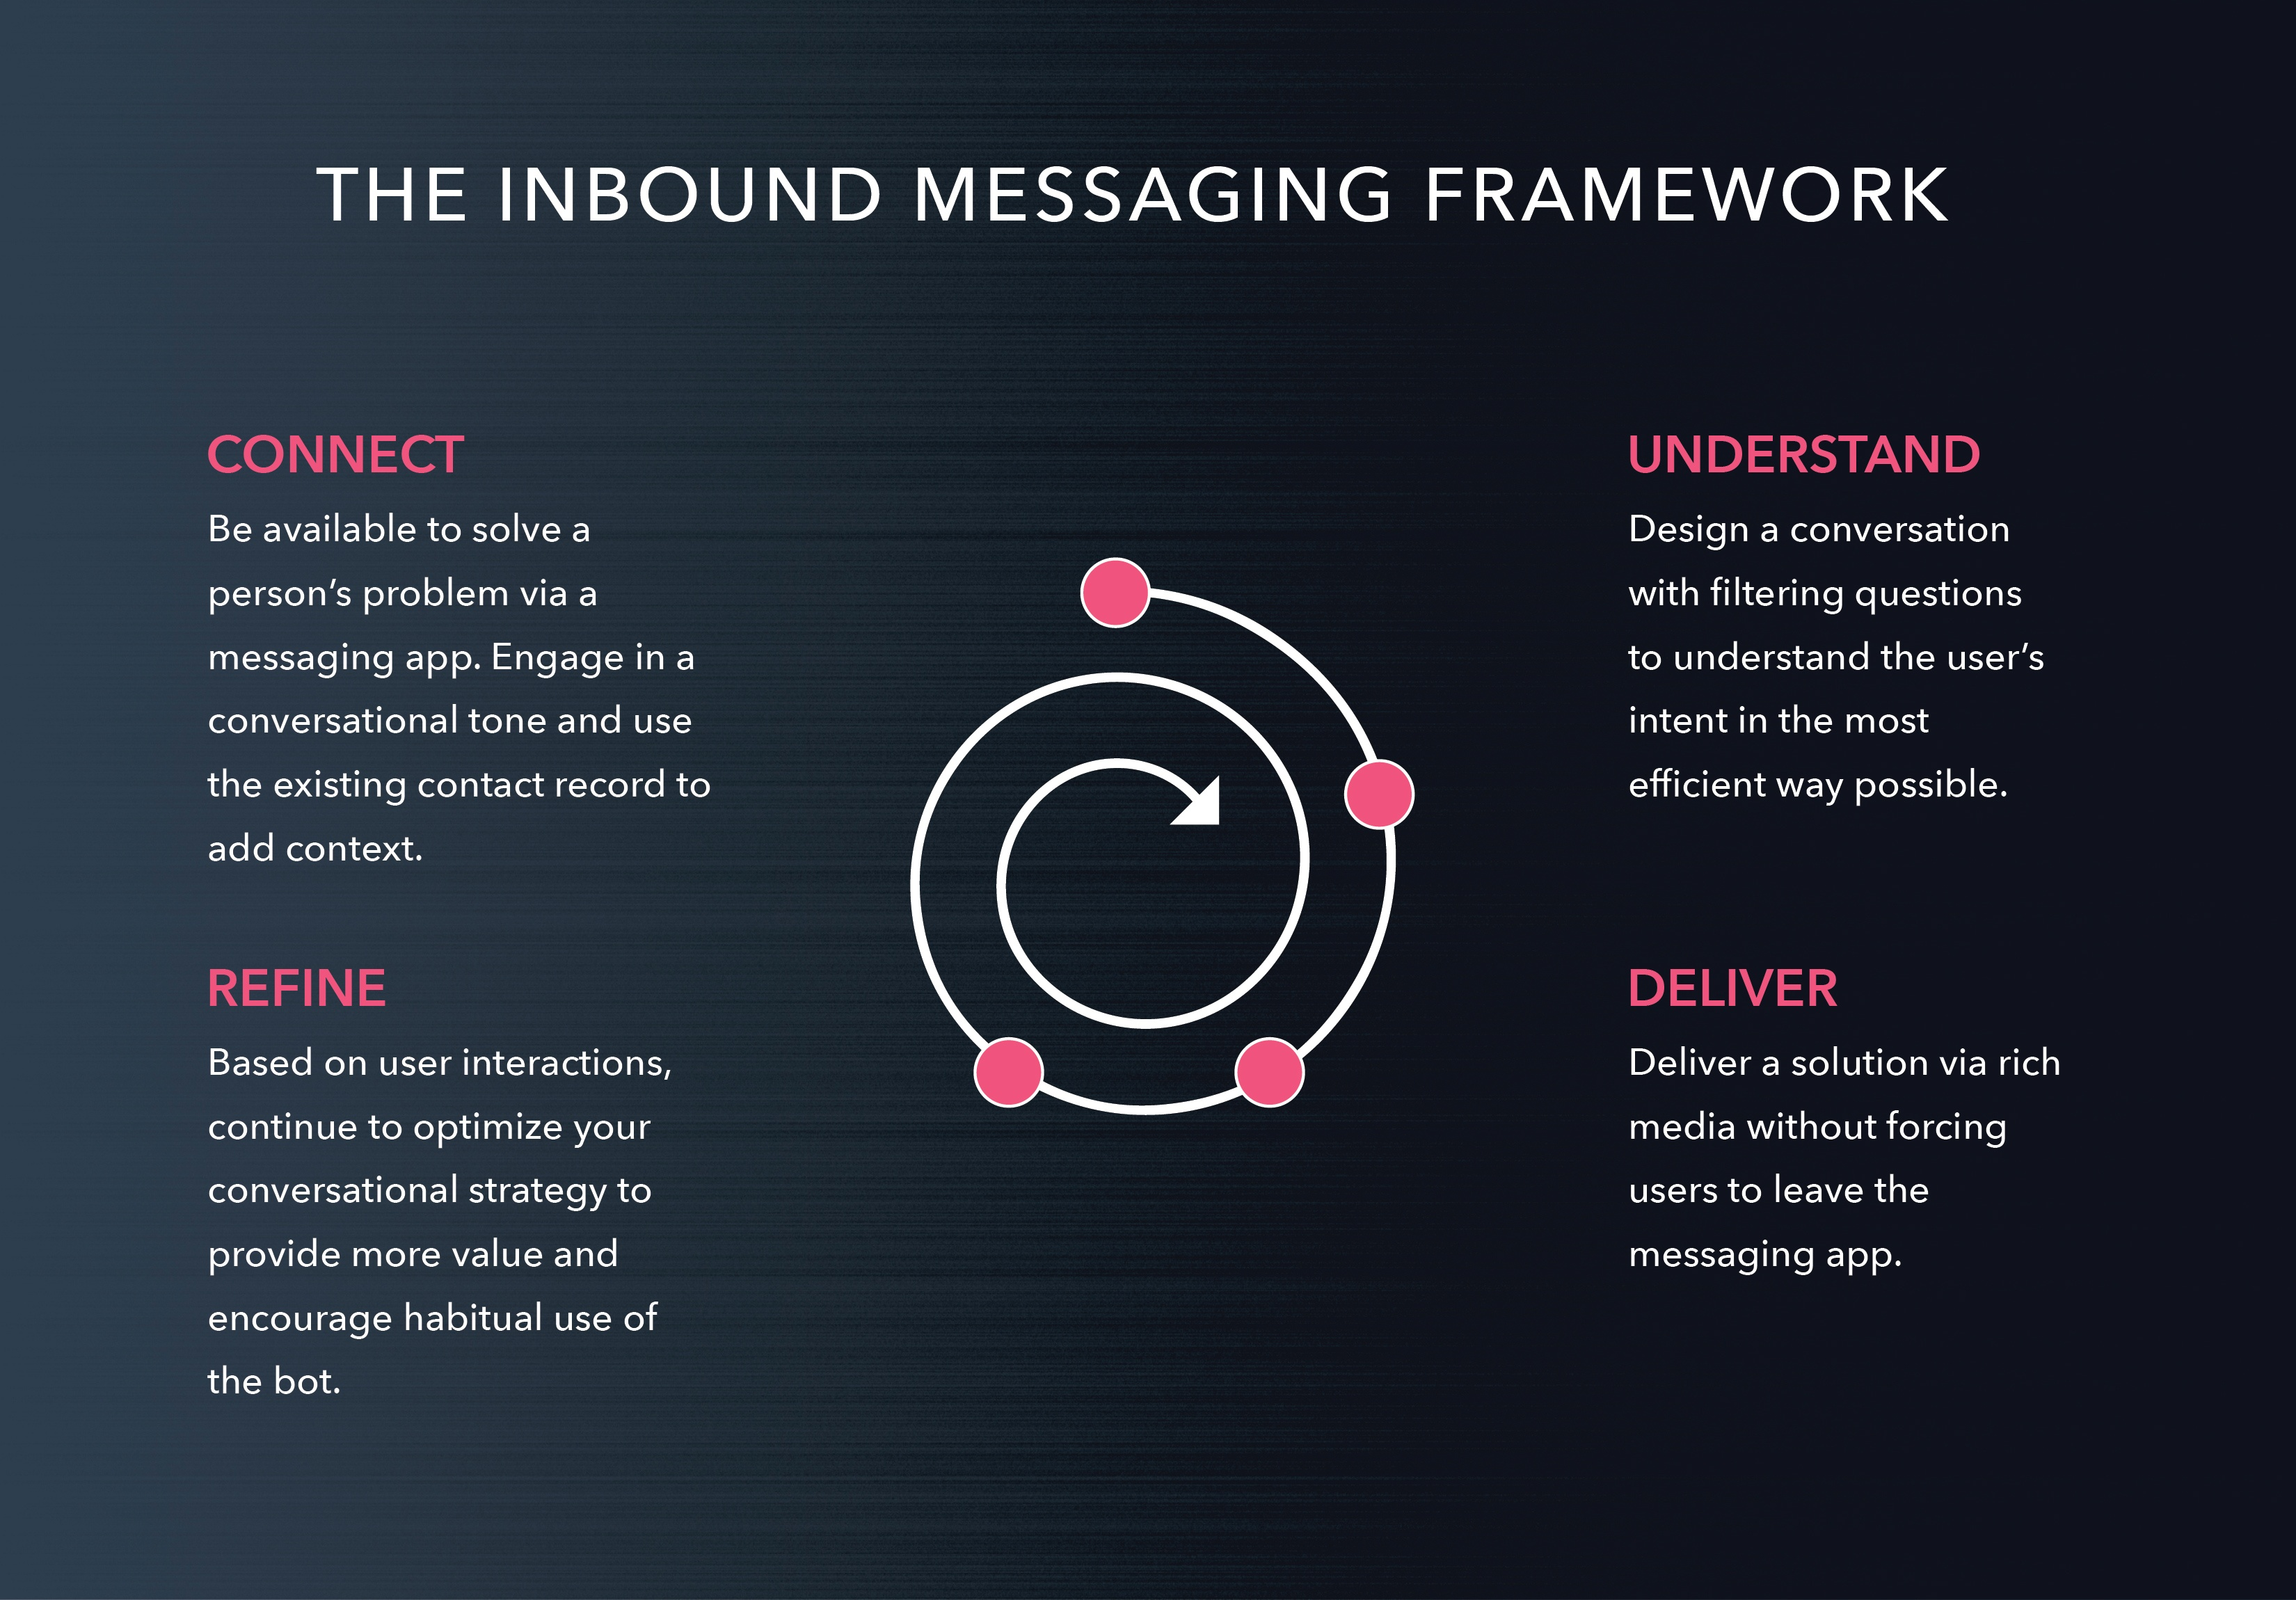 MessagingFramework-01-2.jpg